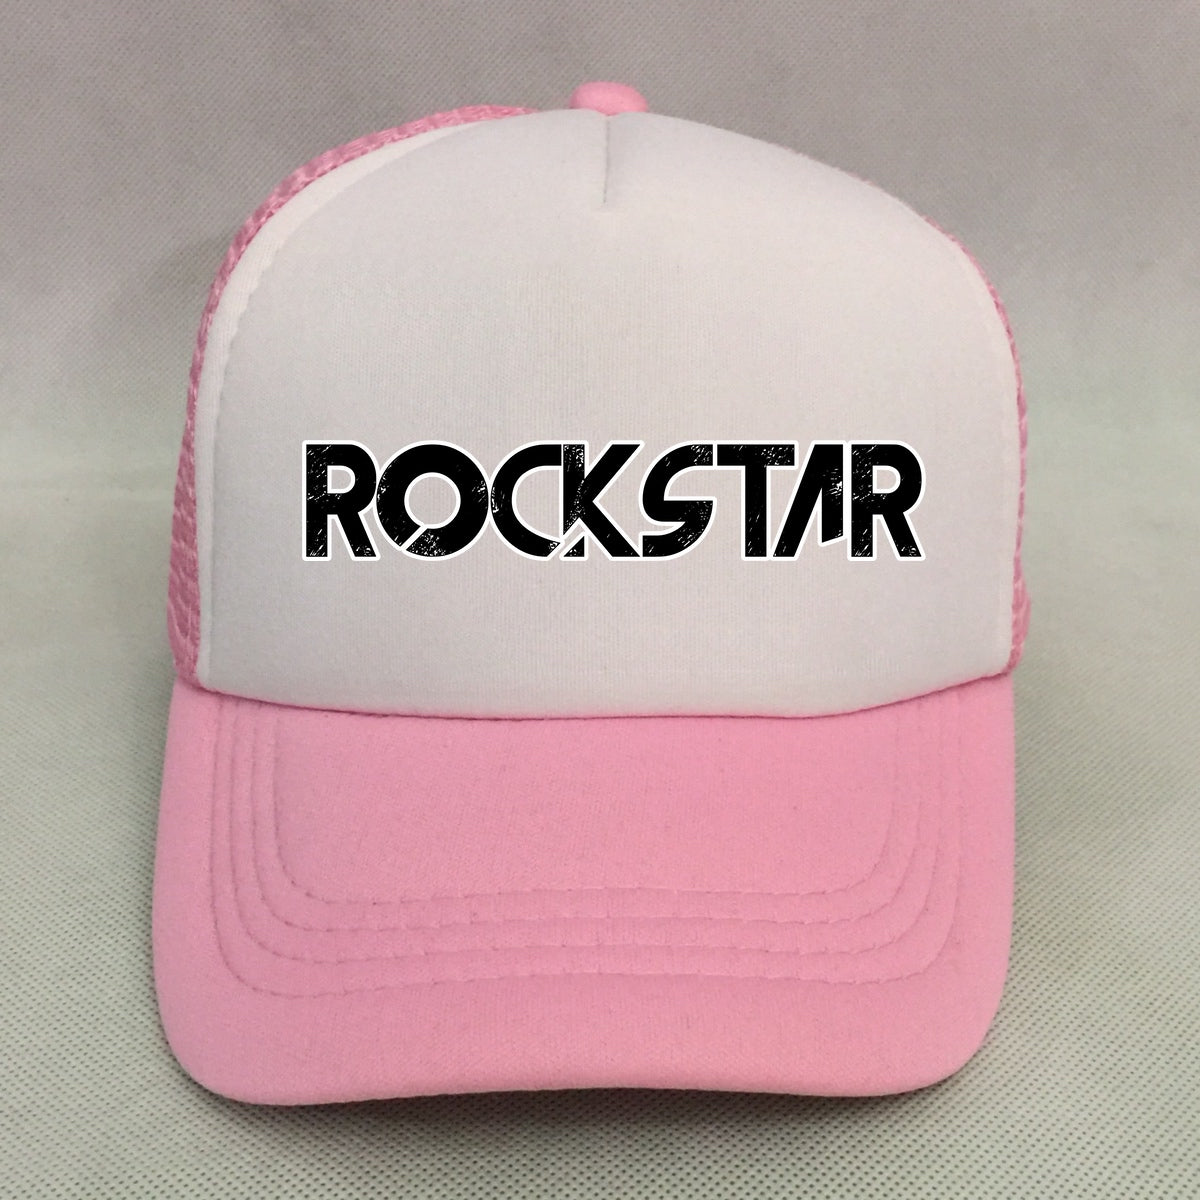 Rockstar Trucker Hat (Pink) – The Little Discovery Train 48f3c582417